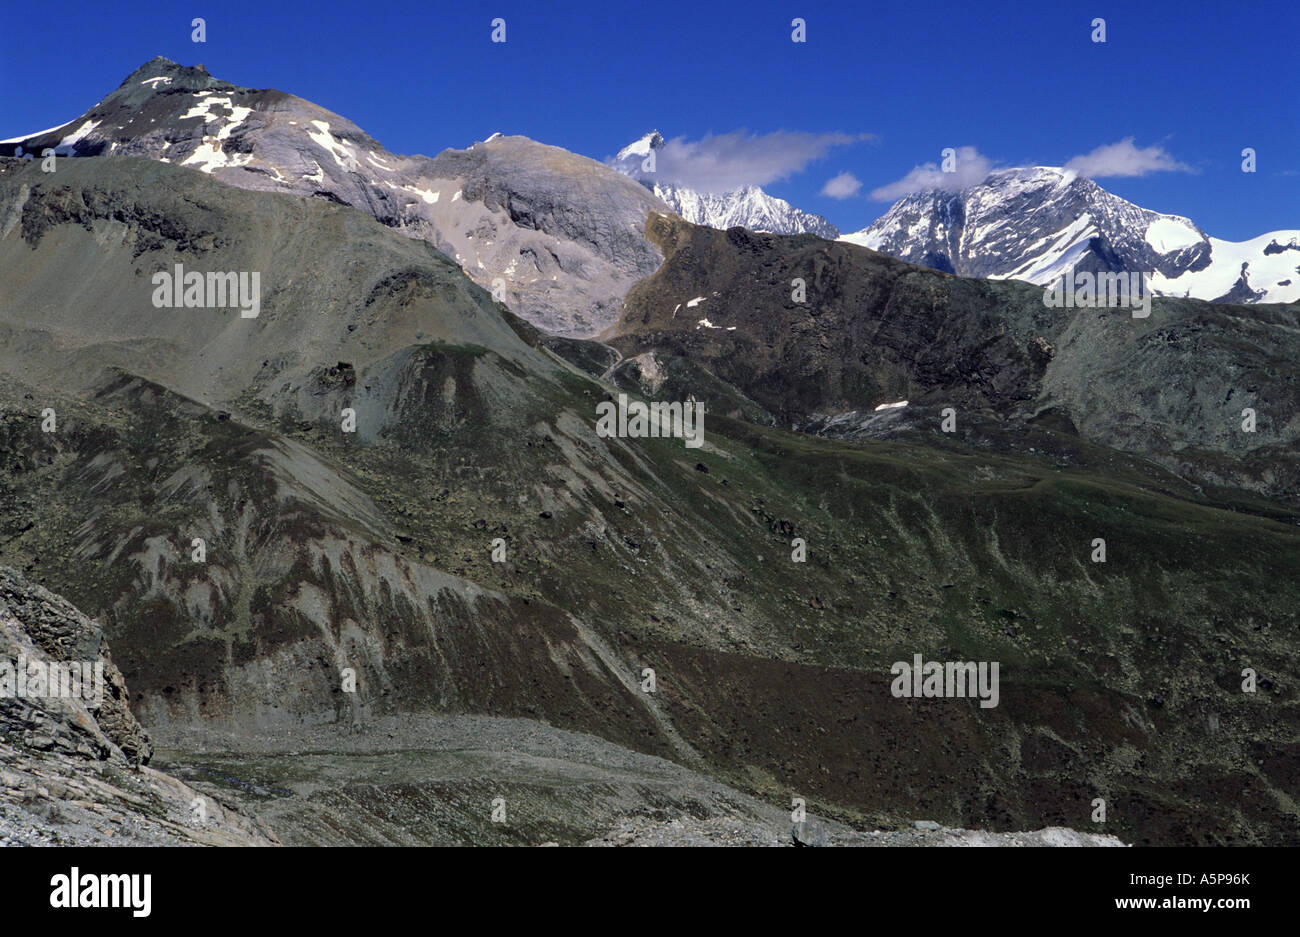 Trift area mountain lansdcape - Stock Image